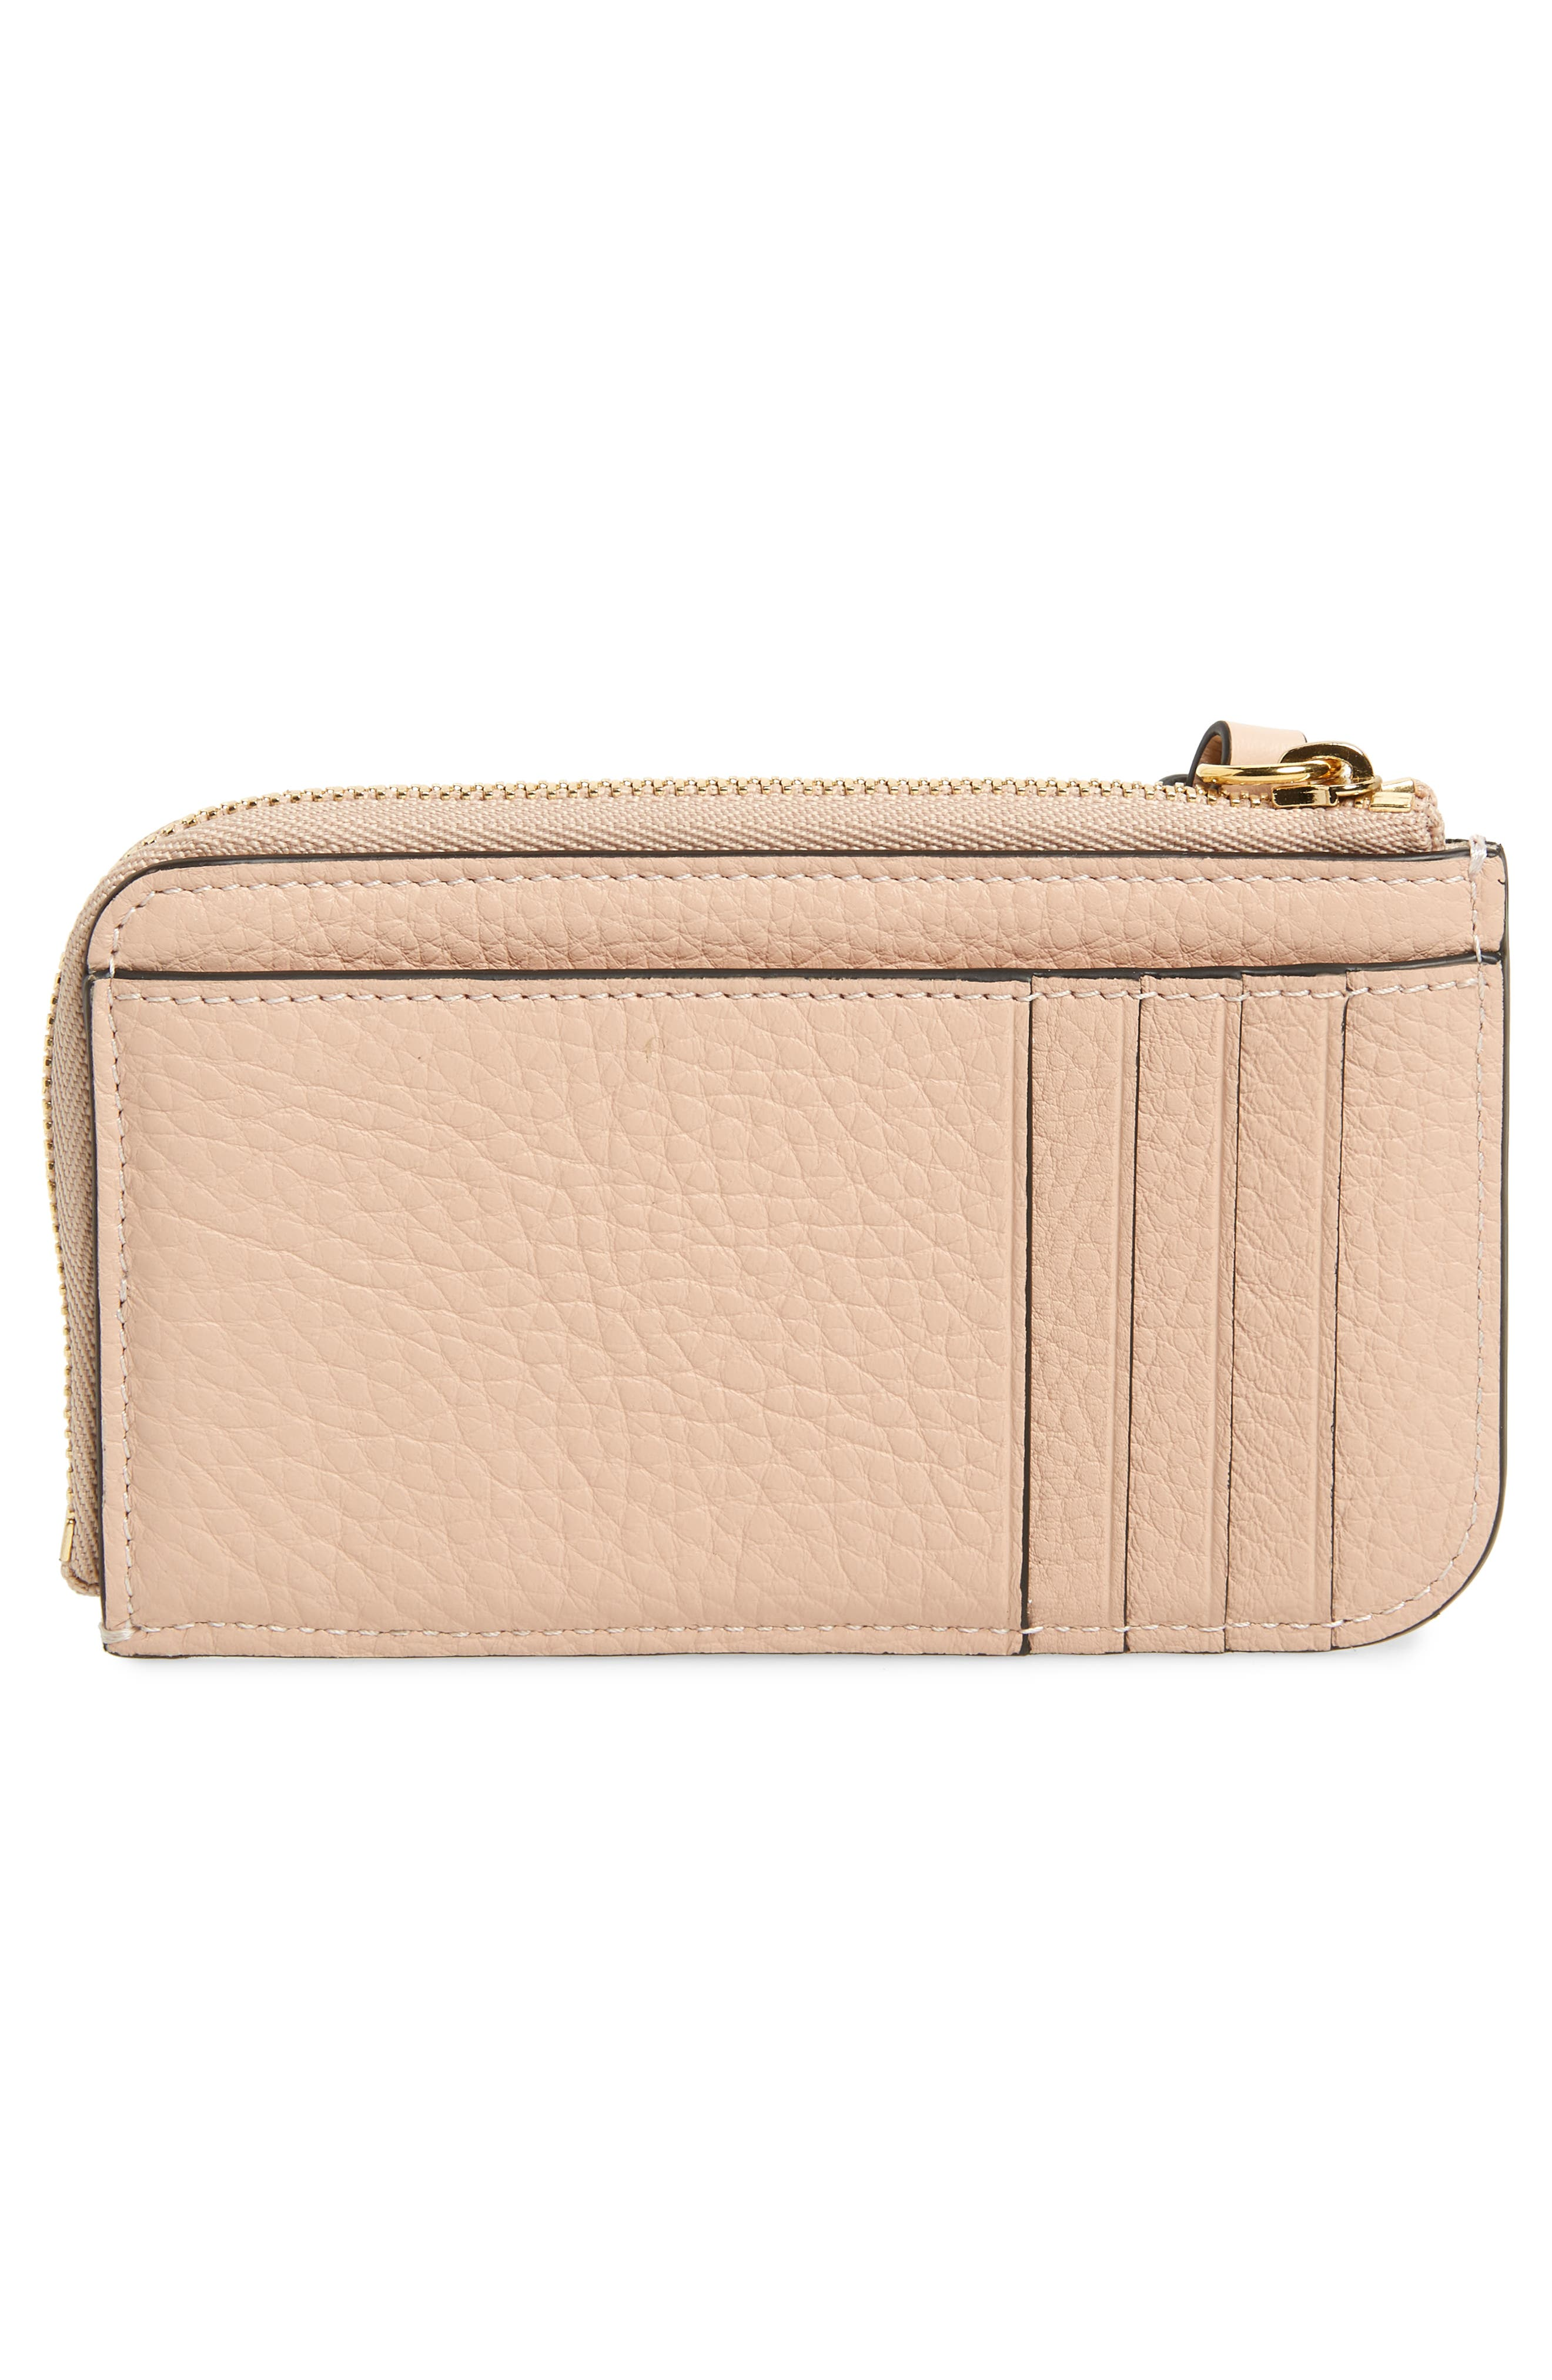 CHLOÉ, Alphabet Leather Card Holder, Alternate thumbnail 4, color, BLUSH NUDE